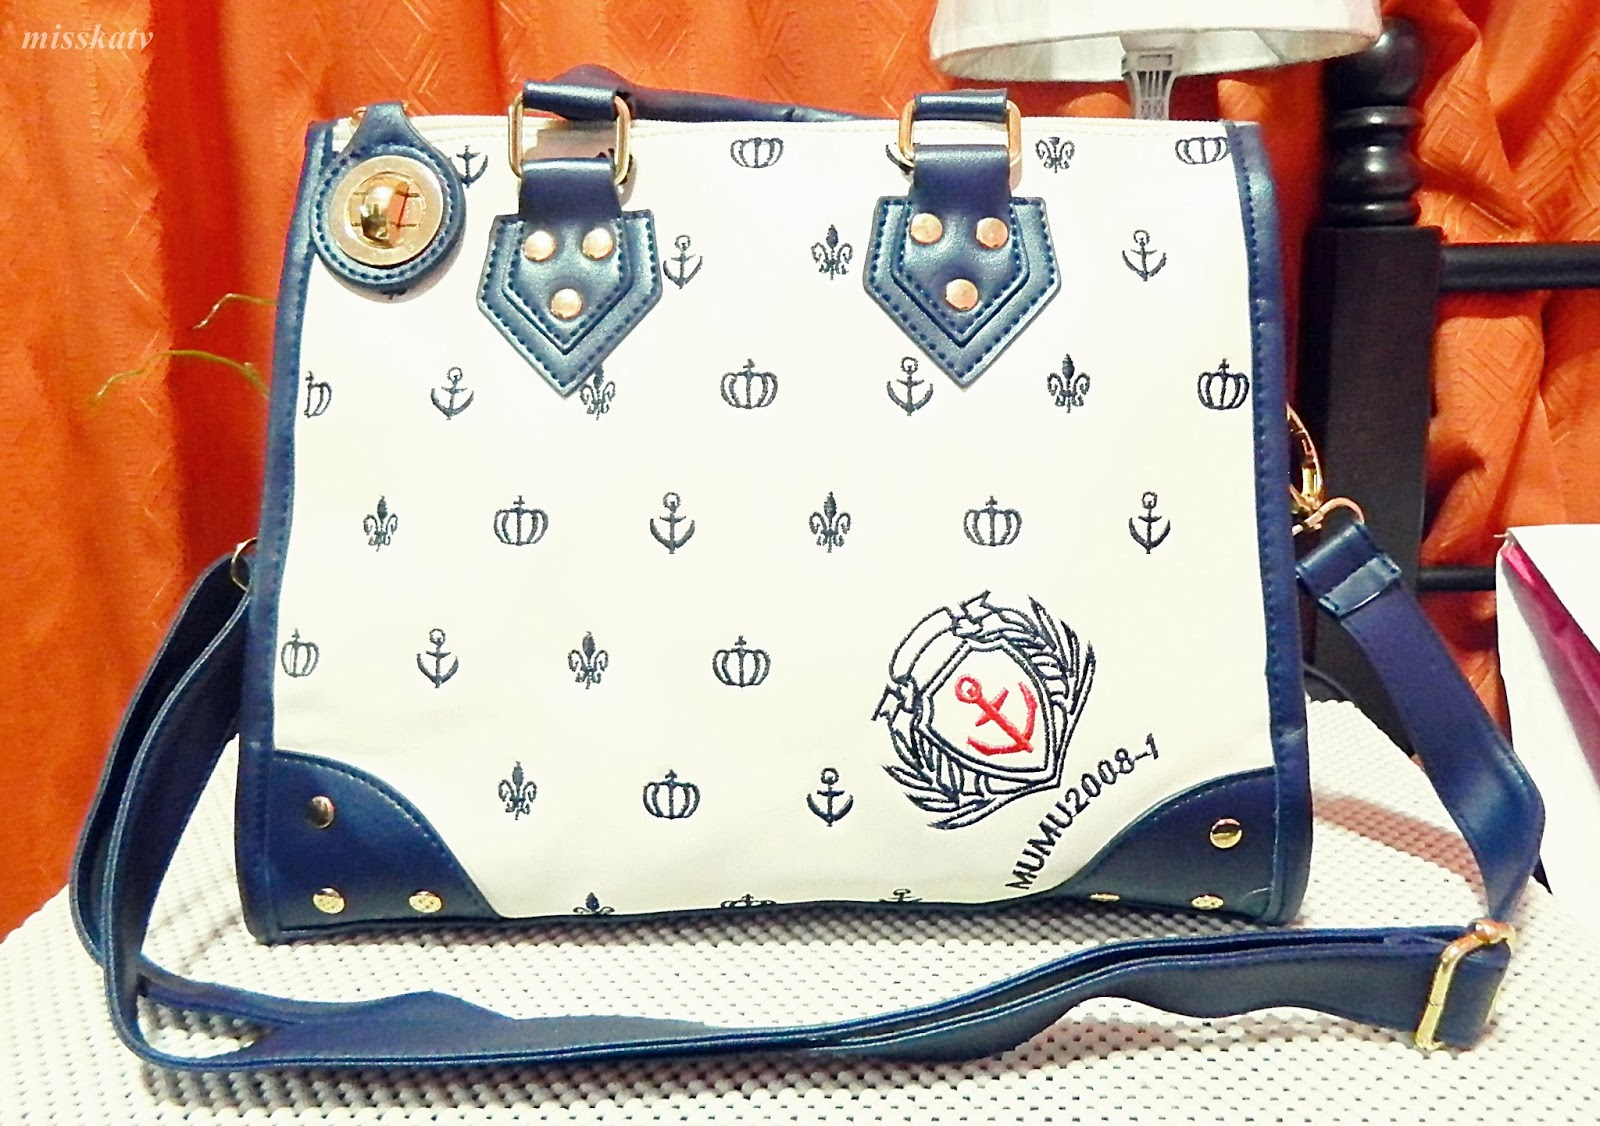 rosewholesale nautical bag anchor navy blue handbag best bag size secured cute simple sling bag 2 in 1 school bag office bag cheap affordable